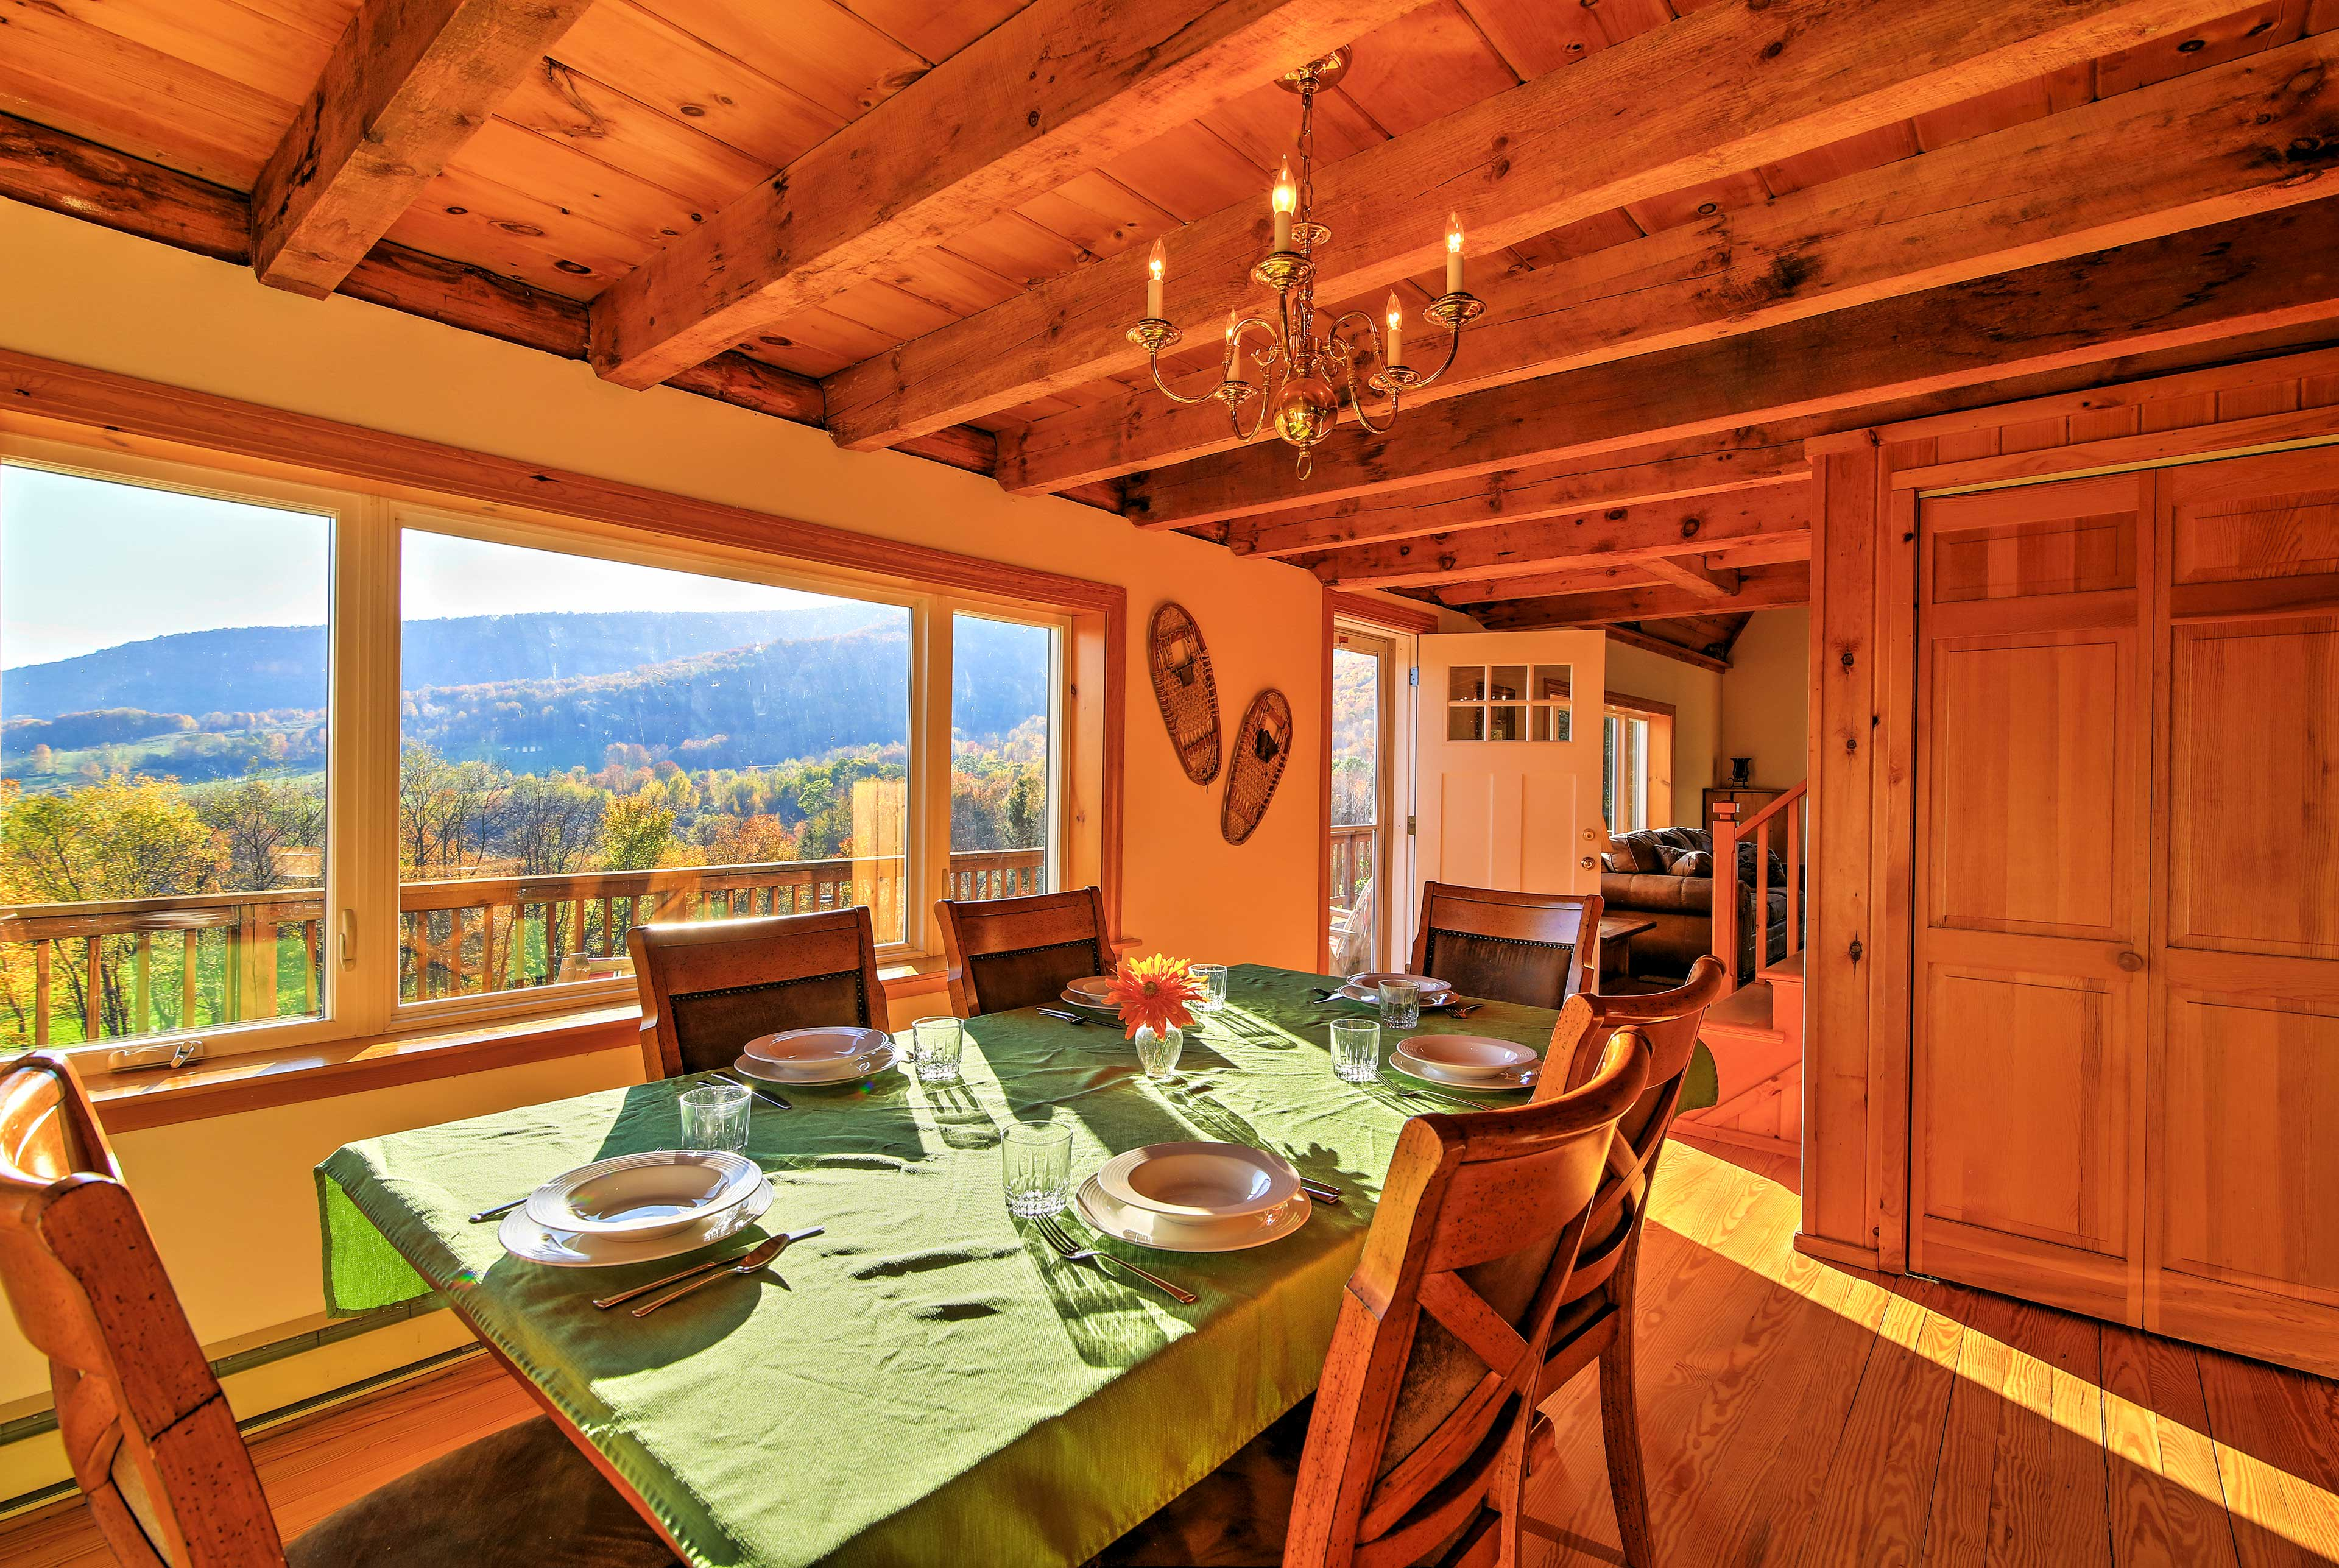 Experience dinner with a view around the 8-person dining table.